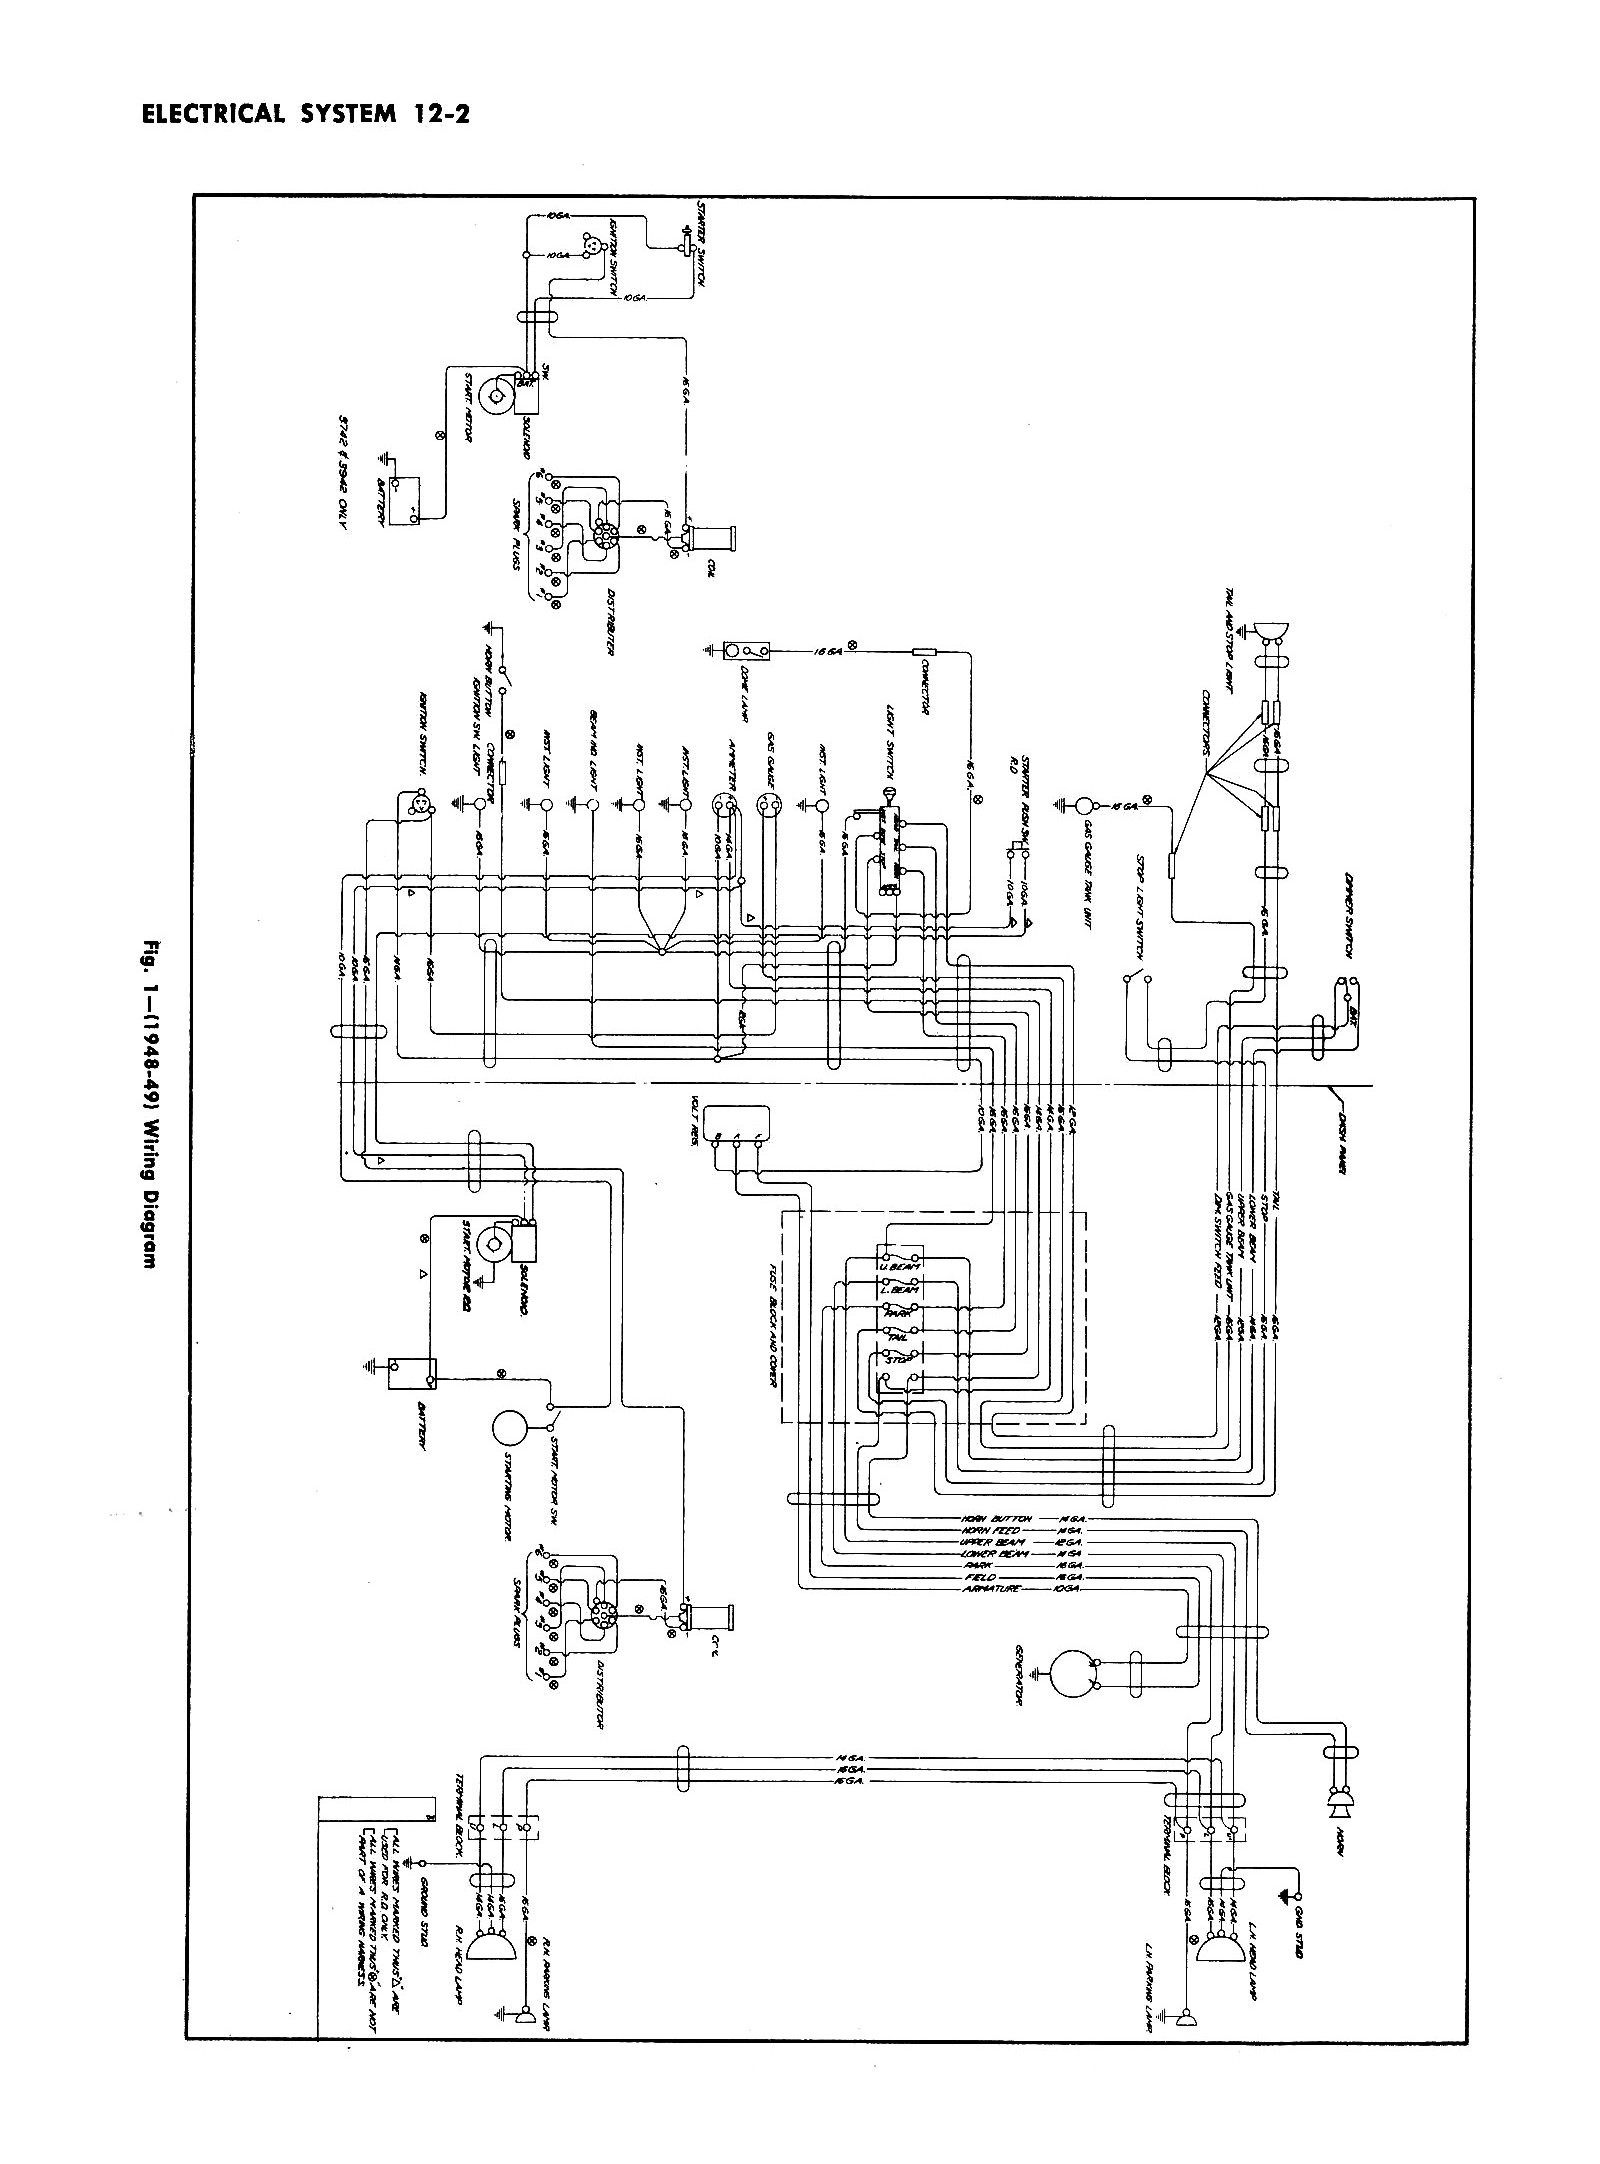 1992 Lincoln Town Car Radio Wiring Search For Diagrams 1994 Diagram Chevy 1995